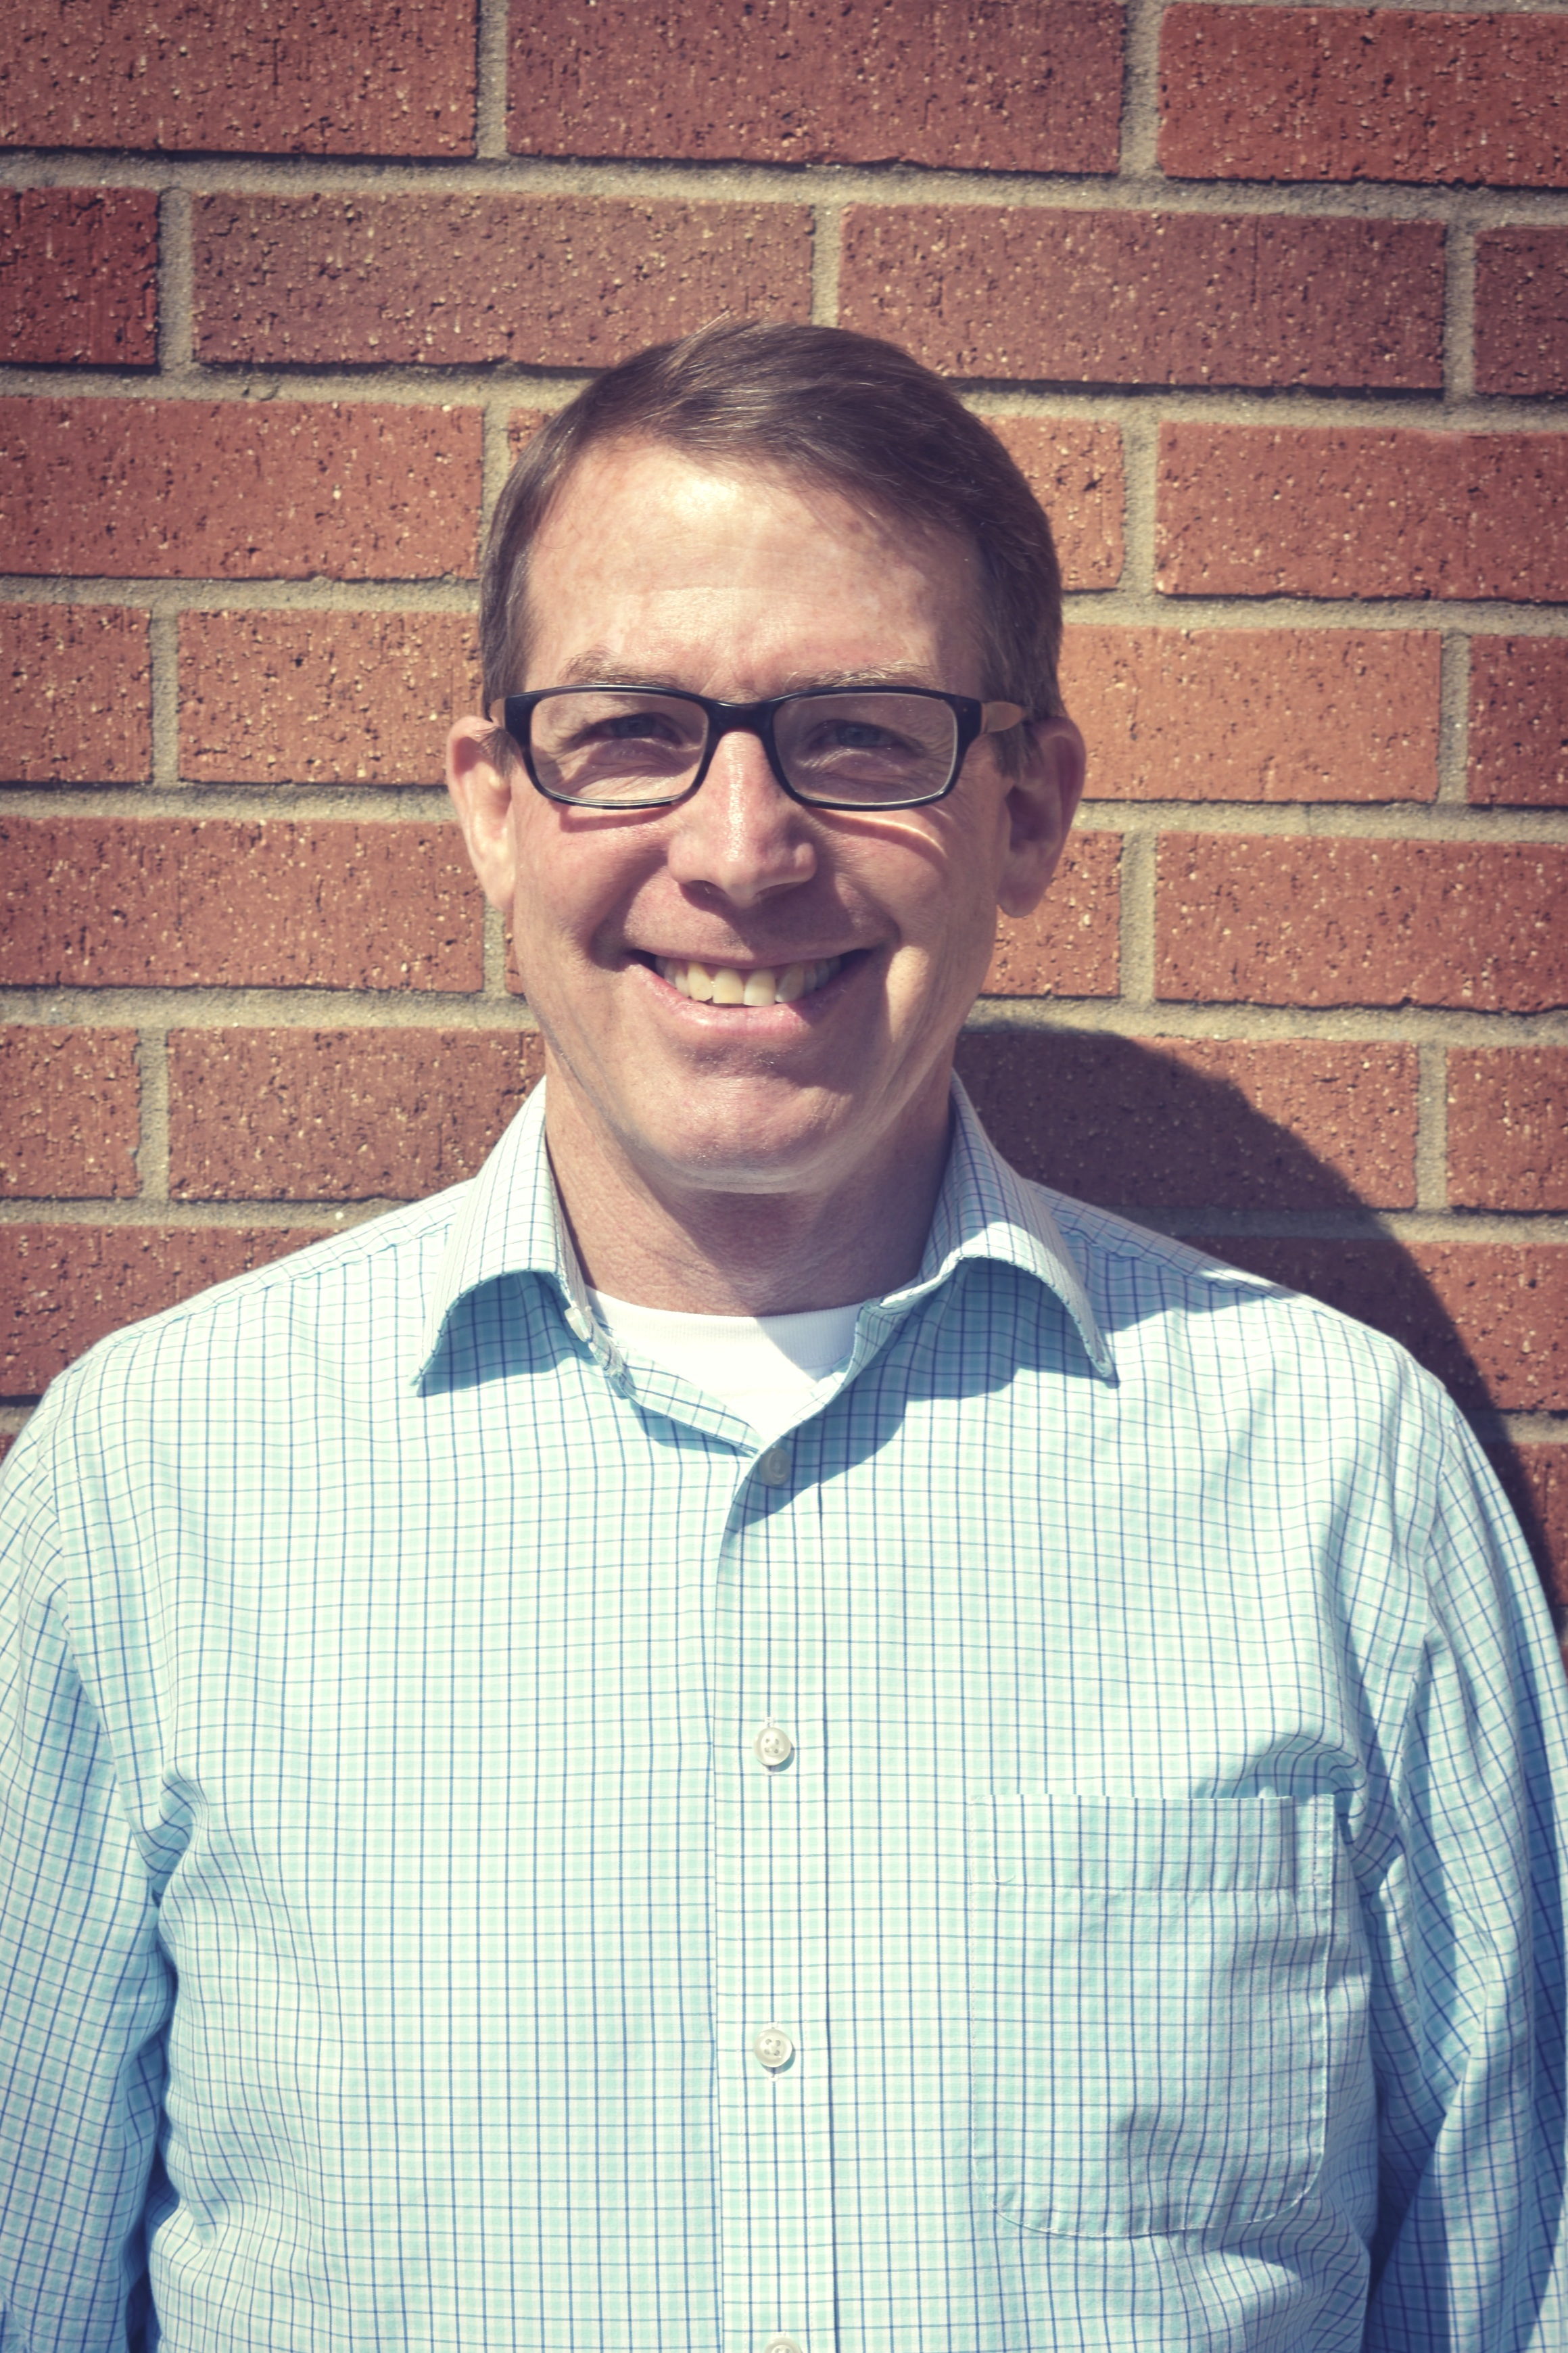 Steve Wimmer - Senior PastorOur senior pastor, Steve Wimmer, joined South Meridian in October of 2018 following a long stint (18 years) as a pastor in Alma, Michigan. He hails from the wind-swept plains of Wyoming where it is well known that the antelope and deer both outnumber humans! He enjoys running, gardening, reading and listening to God's favorite rock band (U2, of course!). Steve is married to Dawn Brady-Wimmer and they have three adult children: Brianna, Sage and Rees and son-in-law Justin (married to Sage). Steve's deep desire in ministry is, quite simply, to point people toward Jesus Christ and the abundance he creates in our lives.